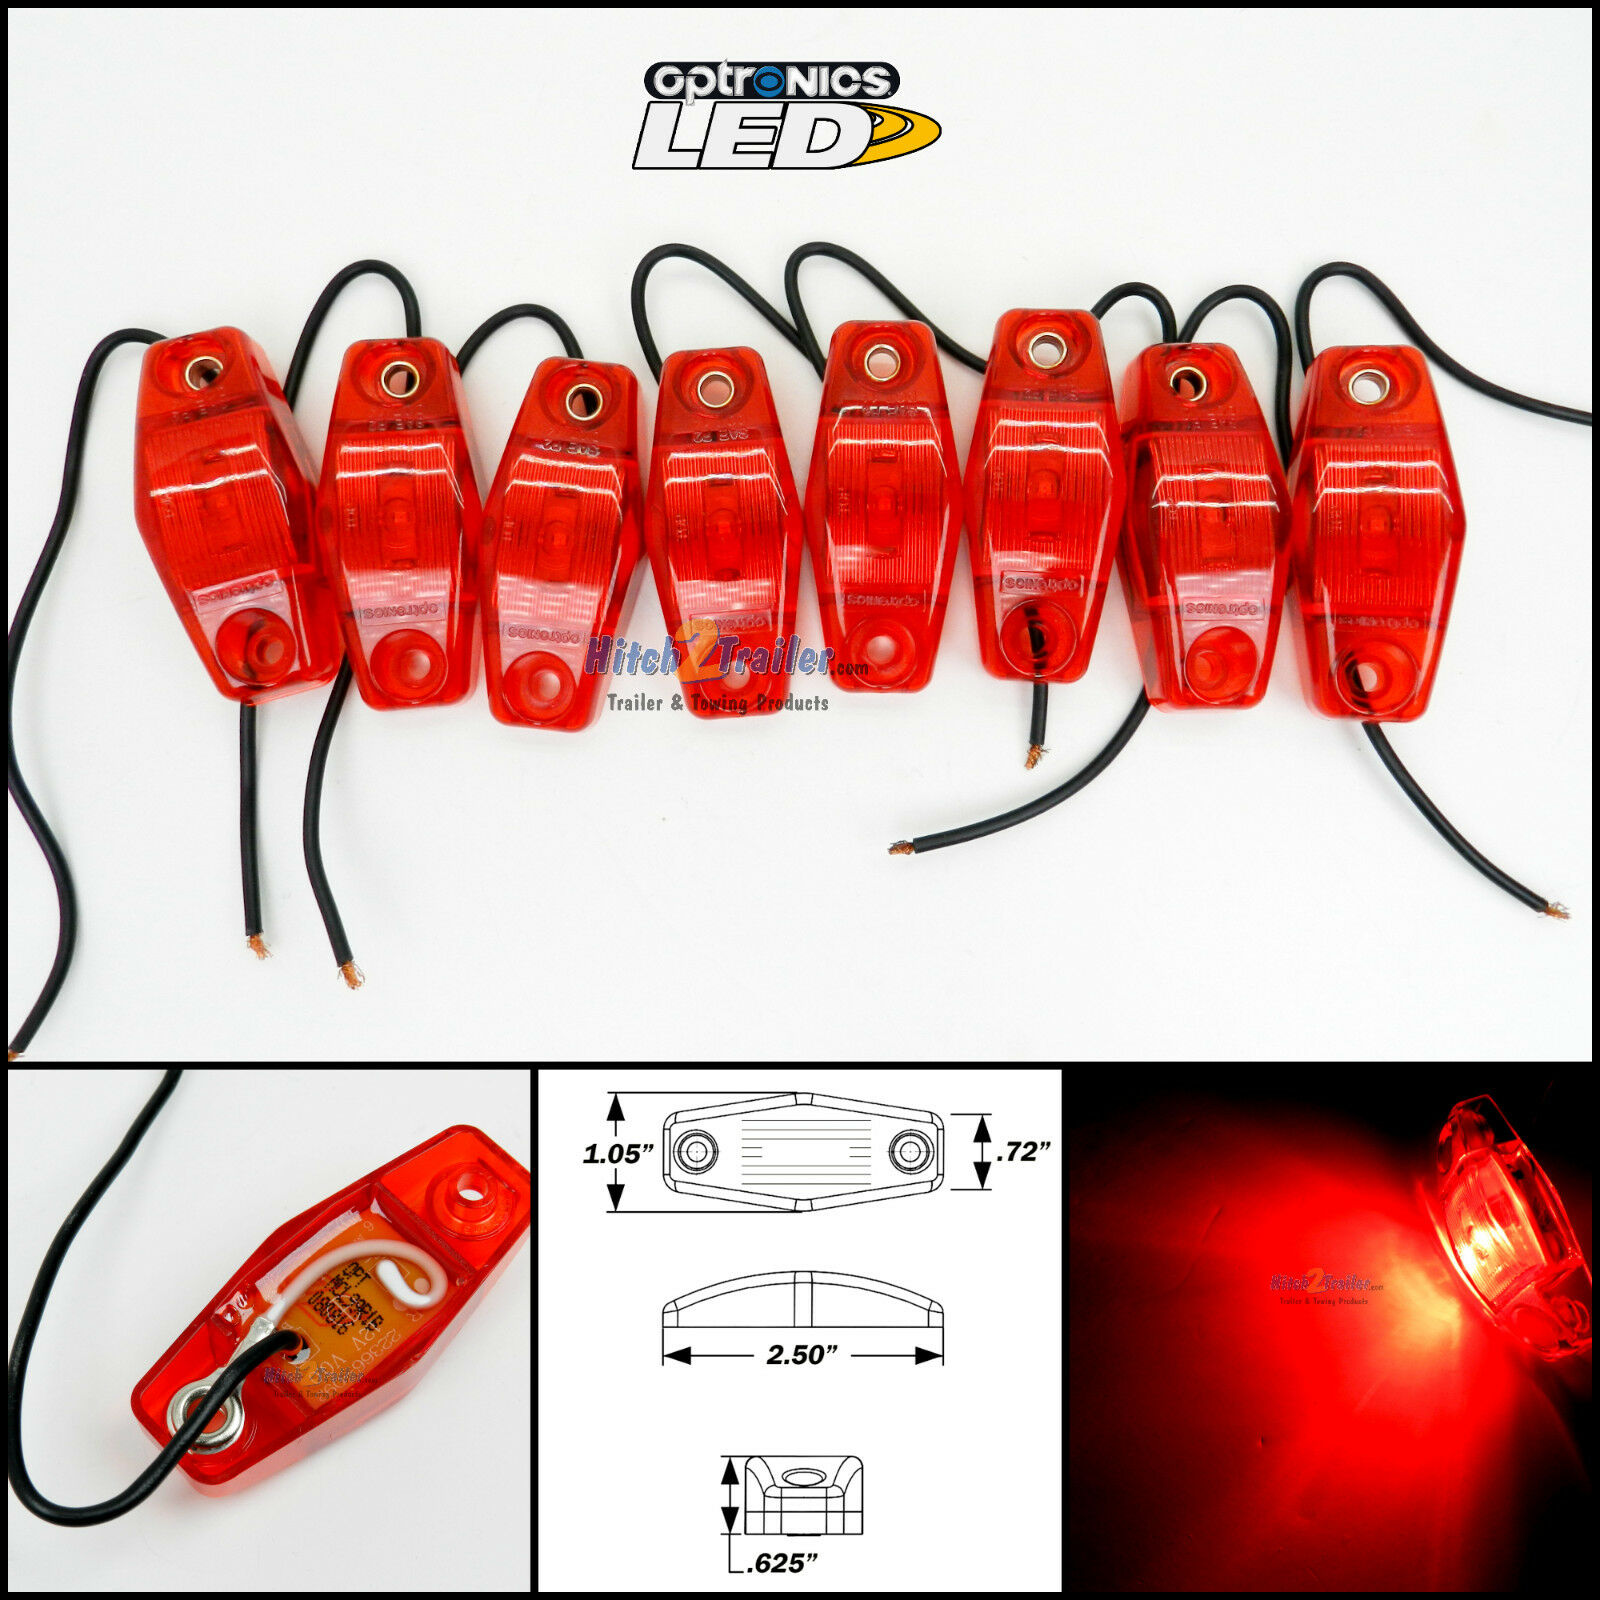 8 - Optronics Red LED light Clearance Marker Trailer Truck Surface Mount 1 wire